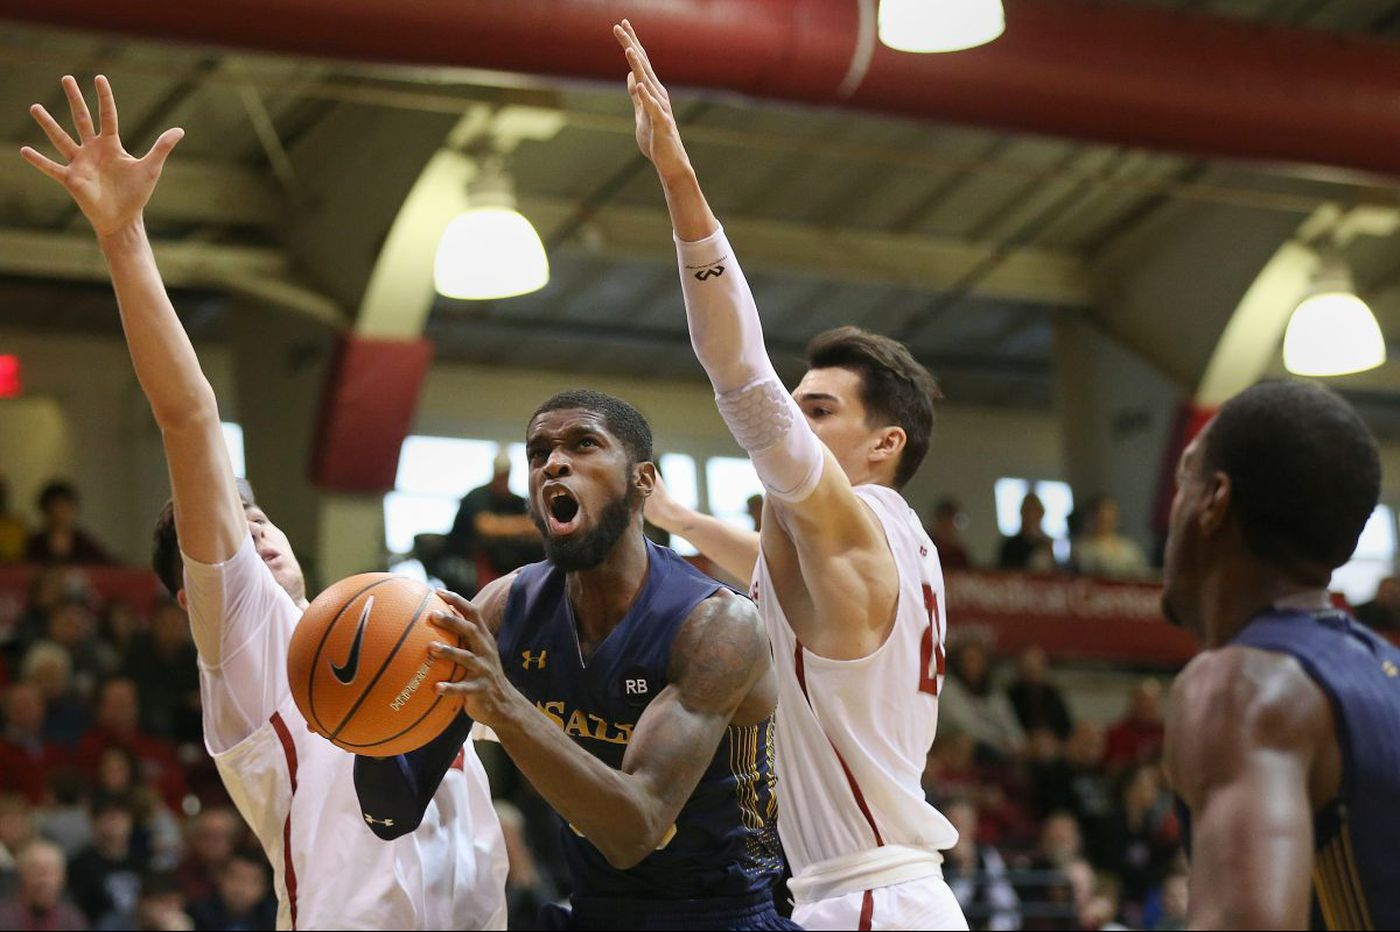 Atlantic 10 Conference tournament preview: What to watch for